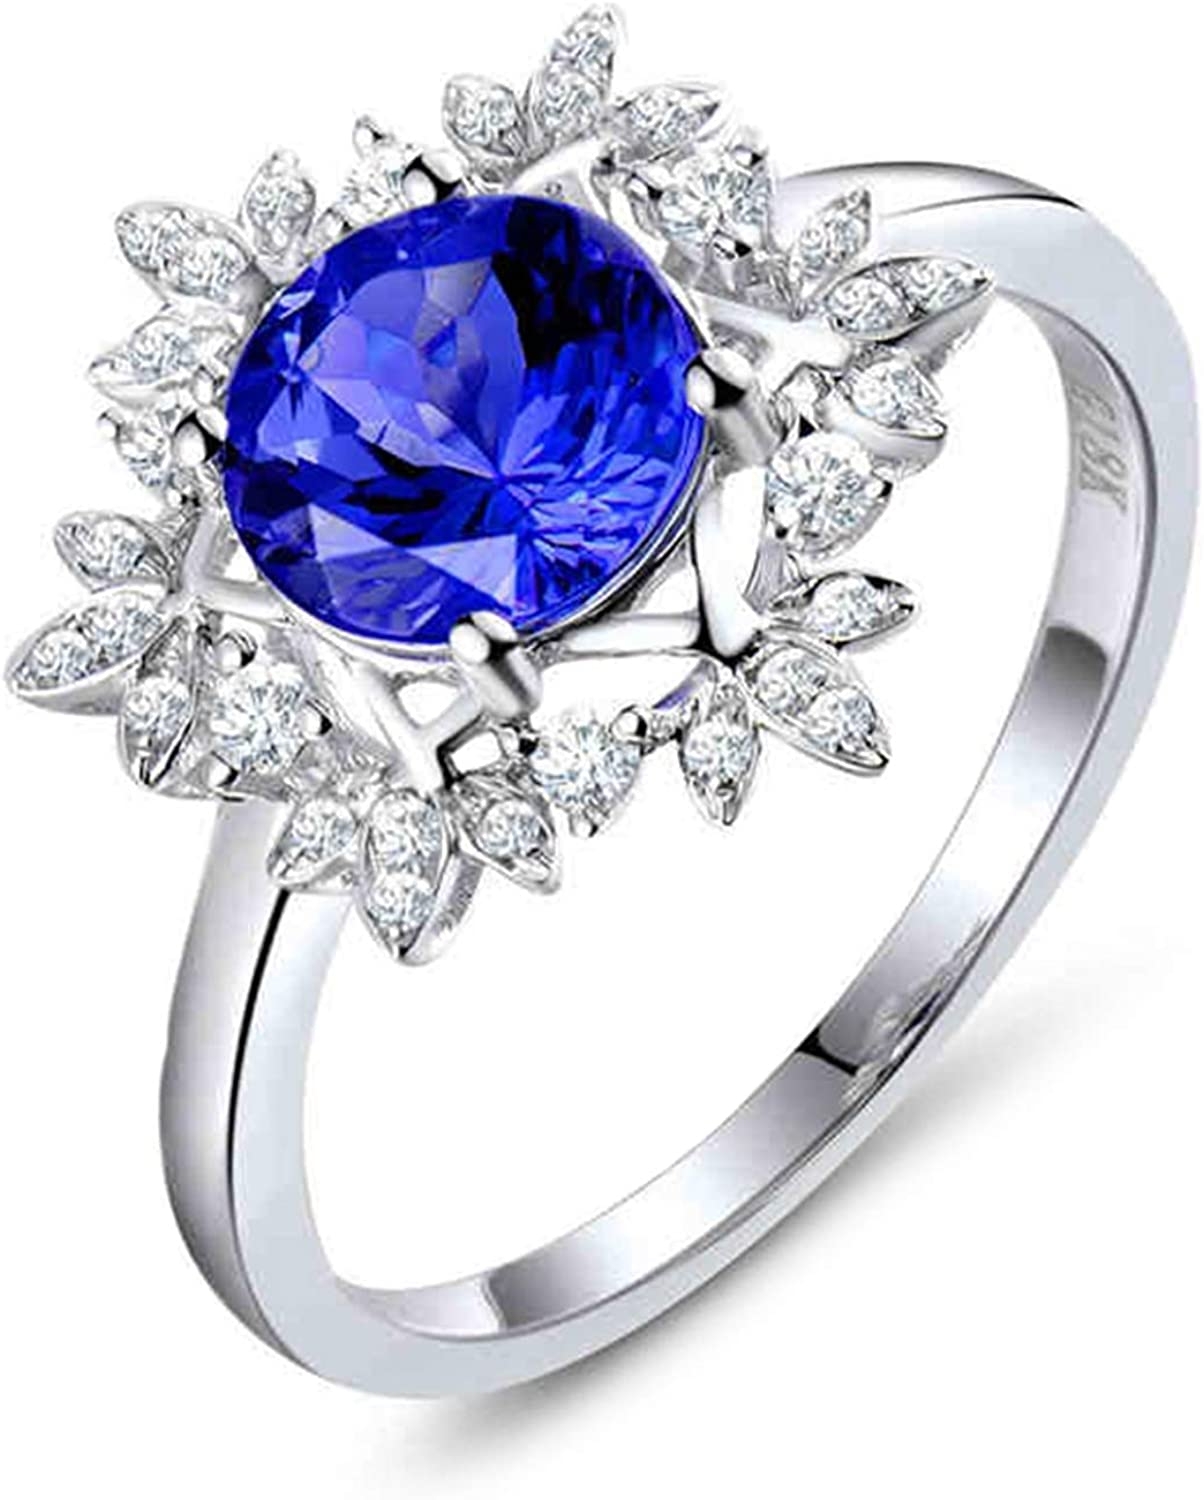 AMDXD Gold Ring 18K Girls Accessories Topics on TV Snowflake Super sale period limited Pr 4 Women